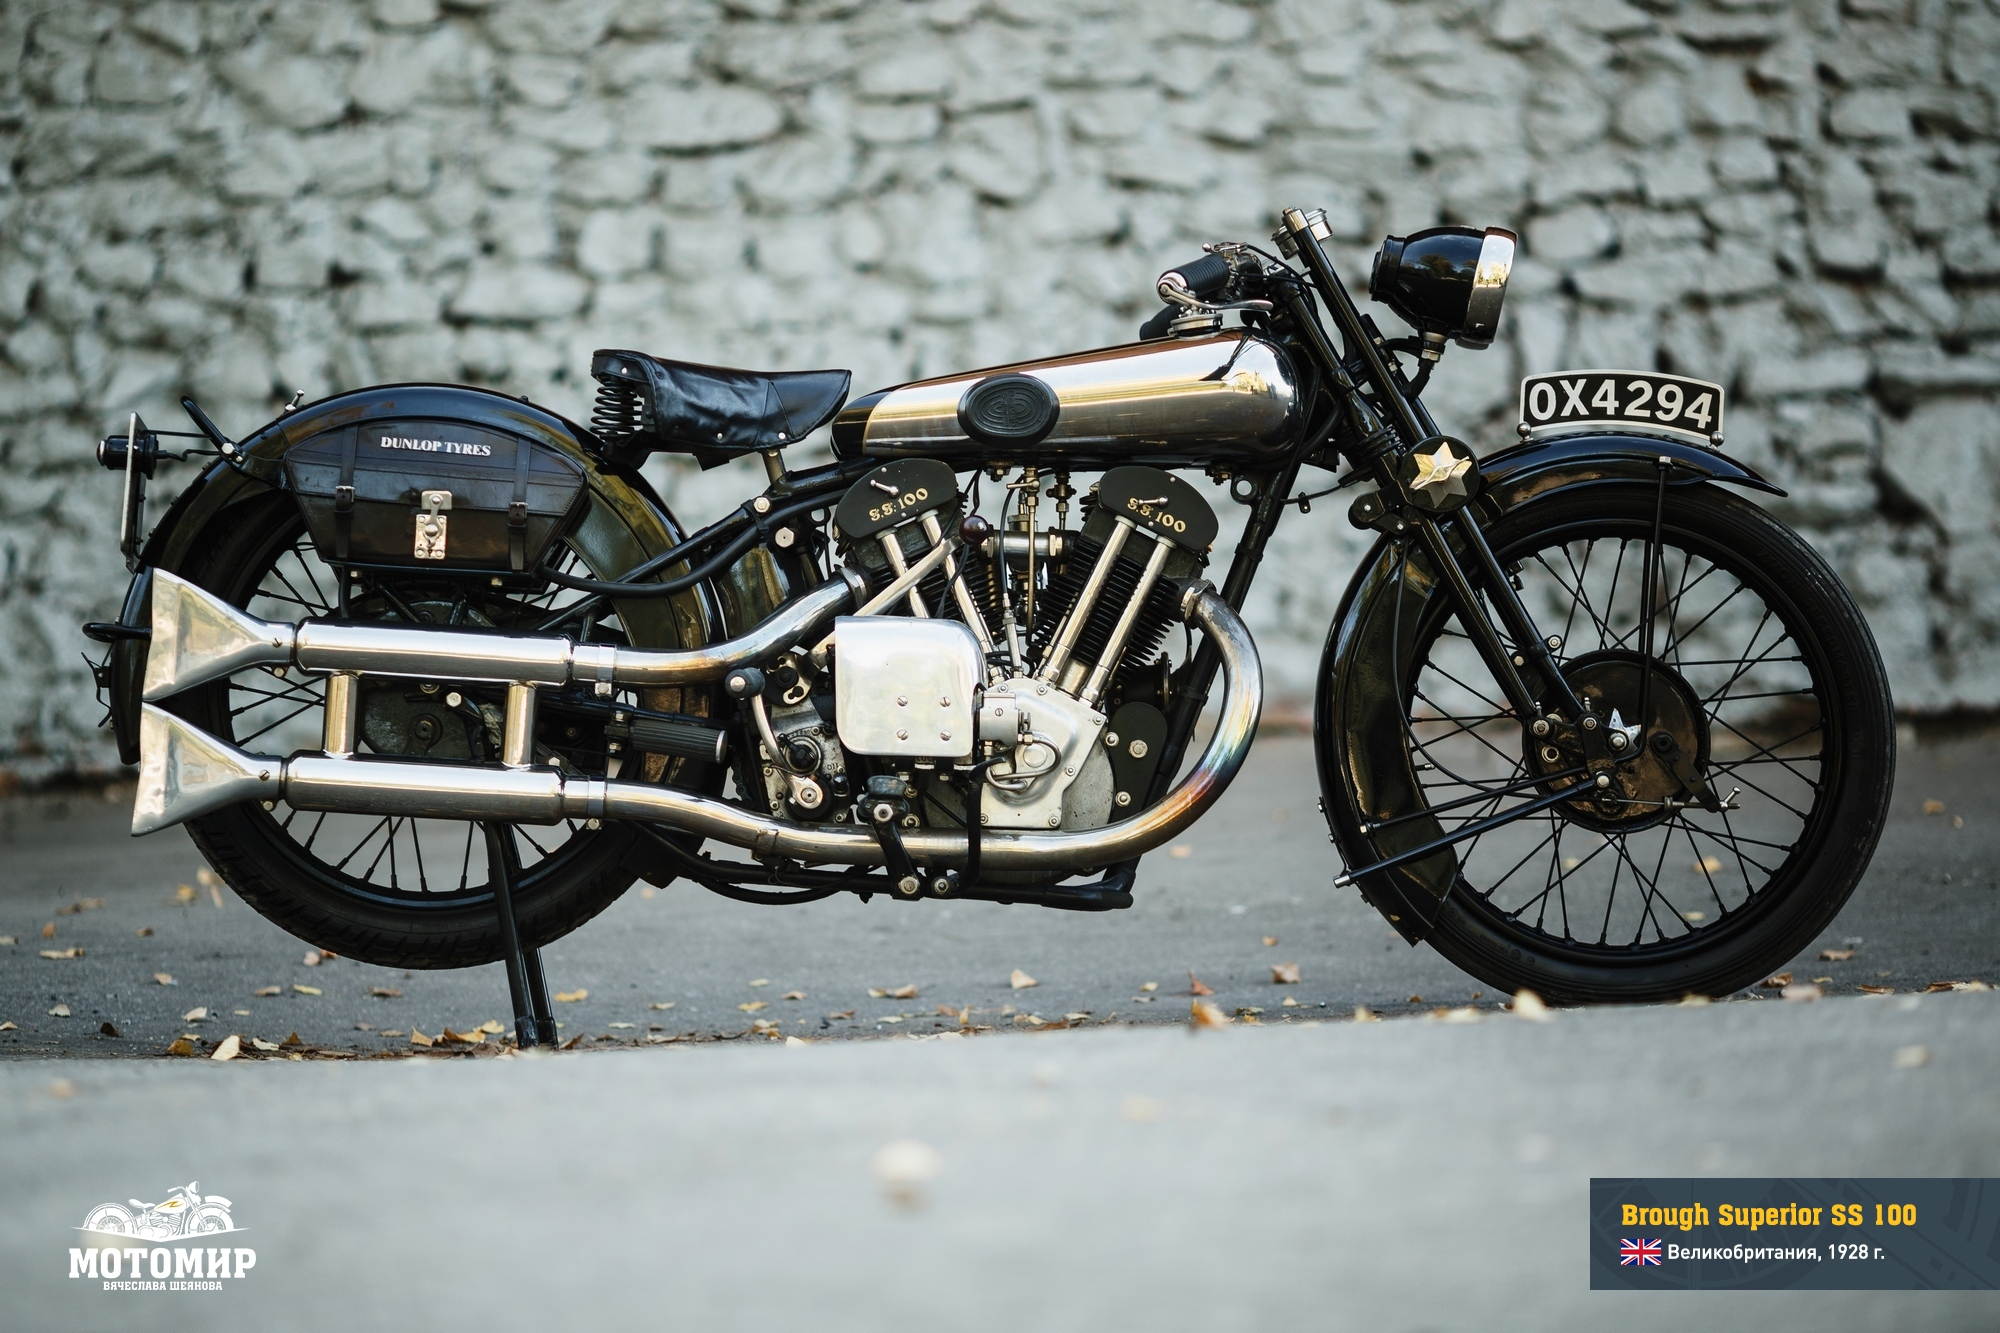 brough-superior-ss100-web-05